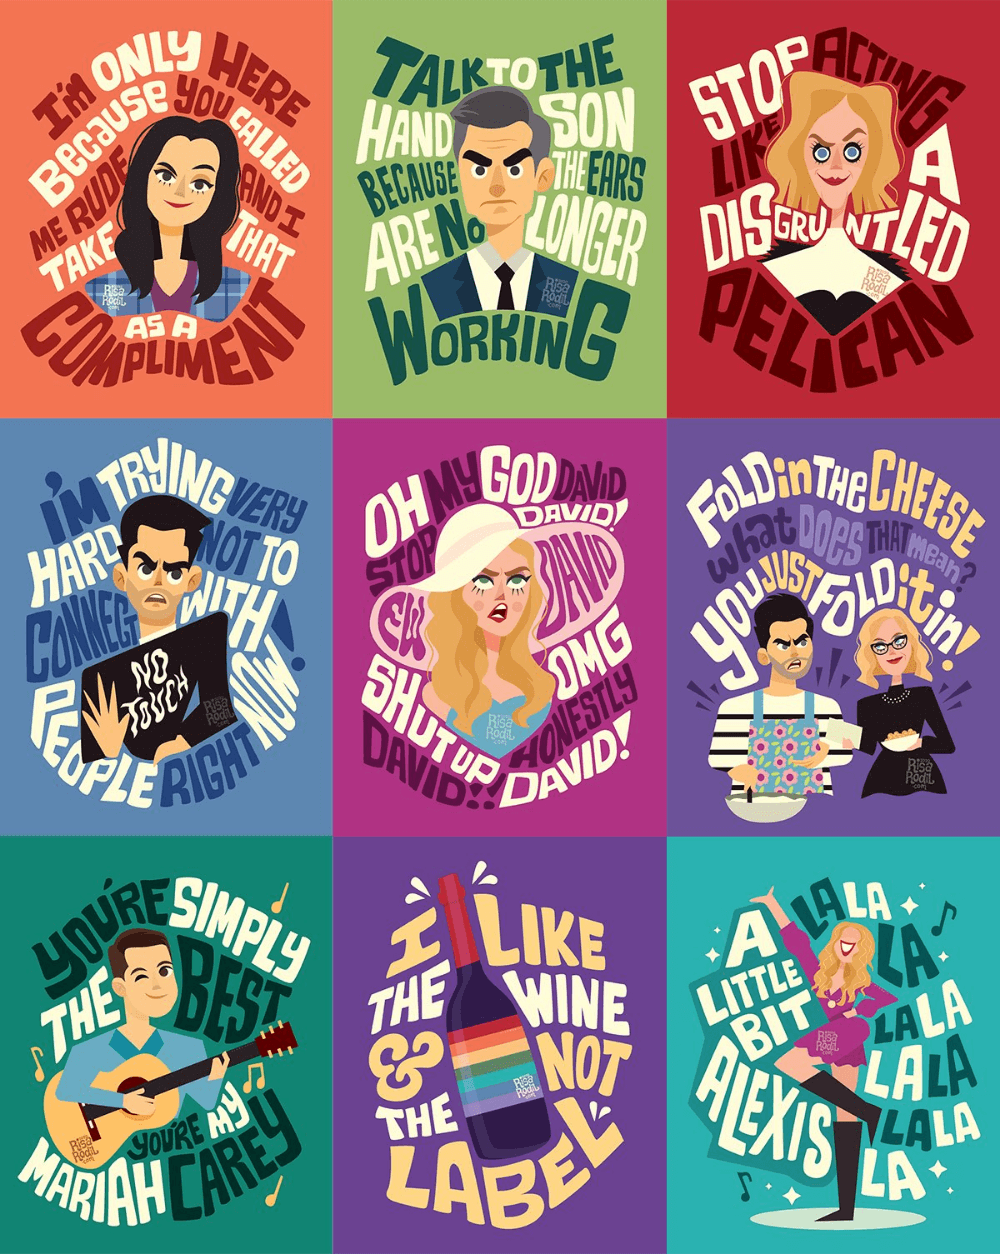 A collection of Schitt's Creek fan art - colourful caricatures of characters from the series with memorable quotes including 'Ew, David' and 'A little bit Alexis'..